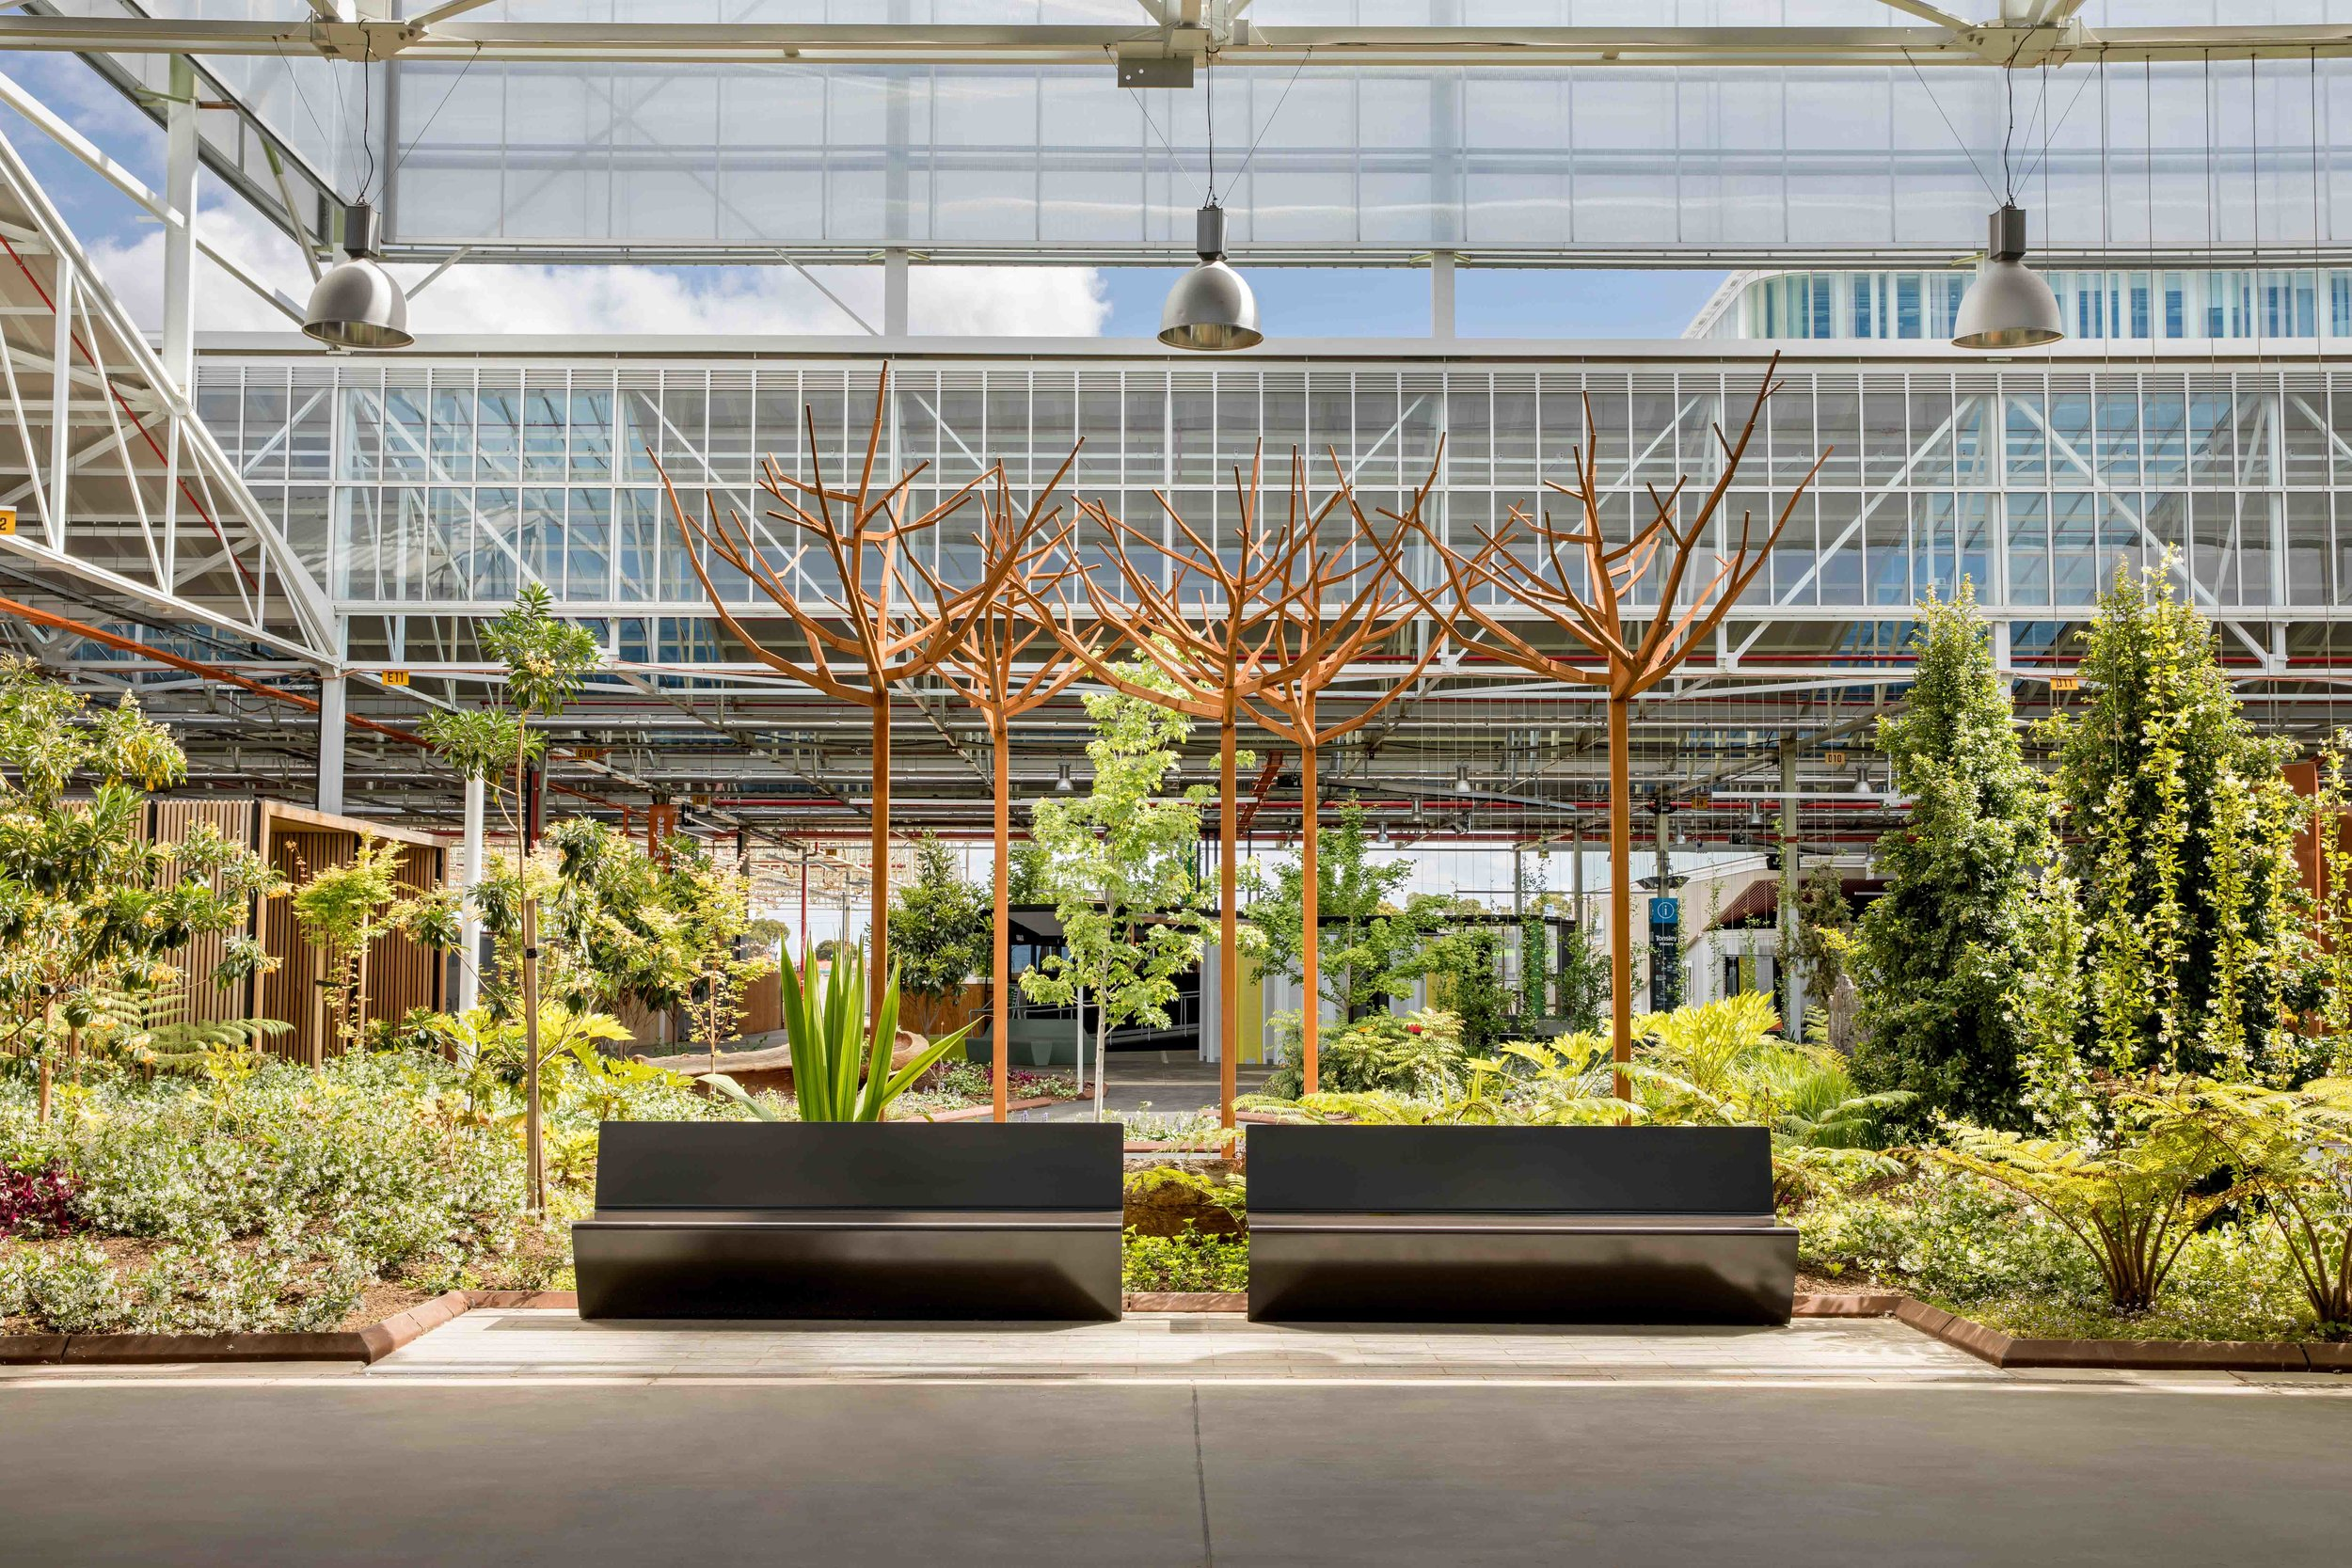 James Hayter's practice, Oxigen, has been strongly involved with Tonsley, the former Mitsubishi Plant in Adelaide.